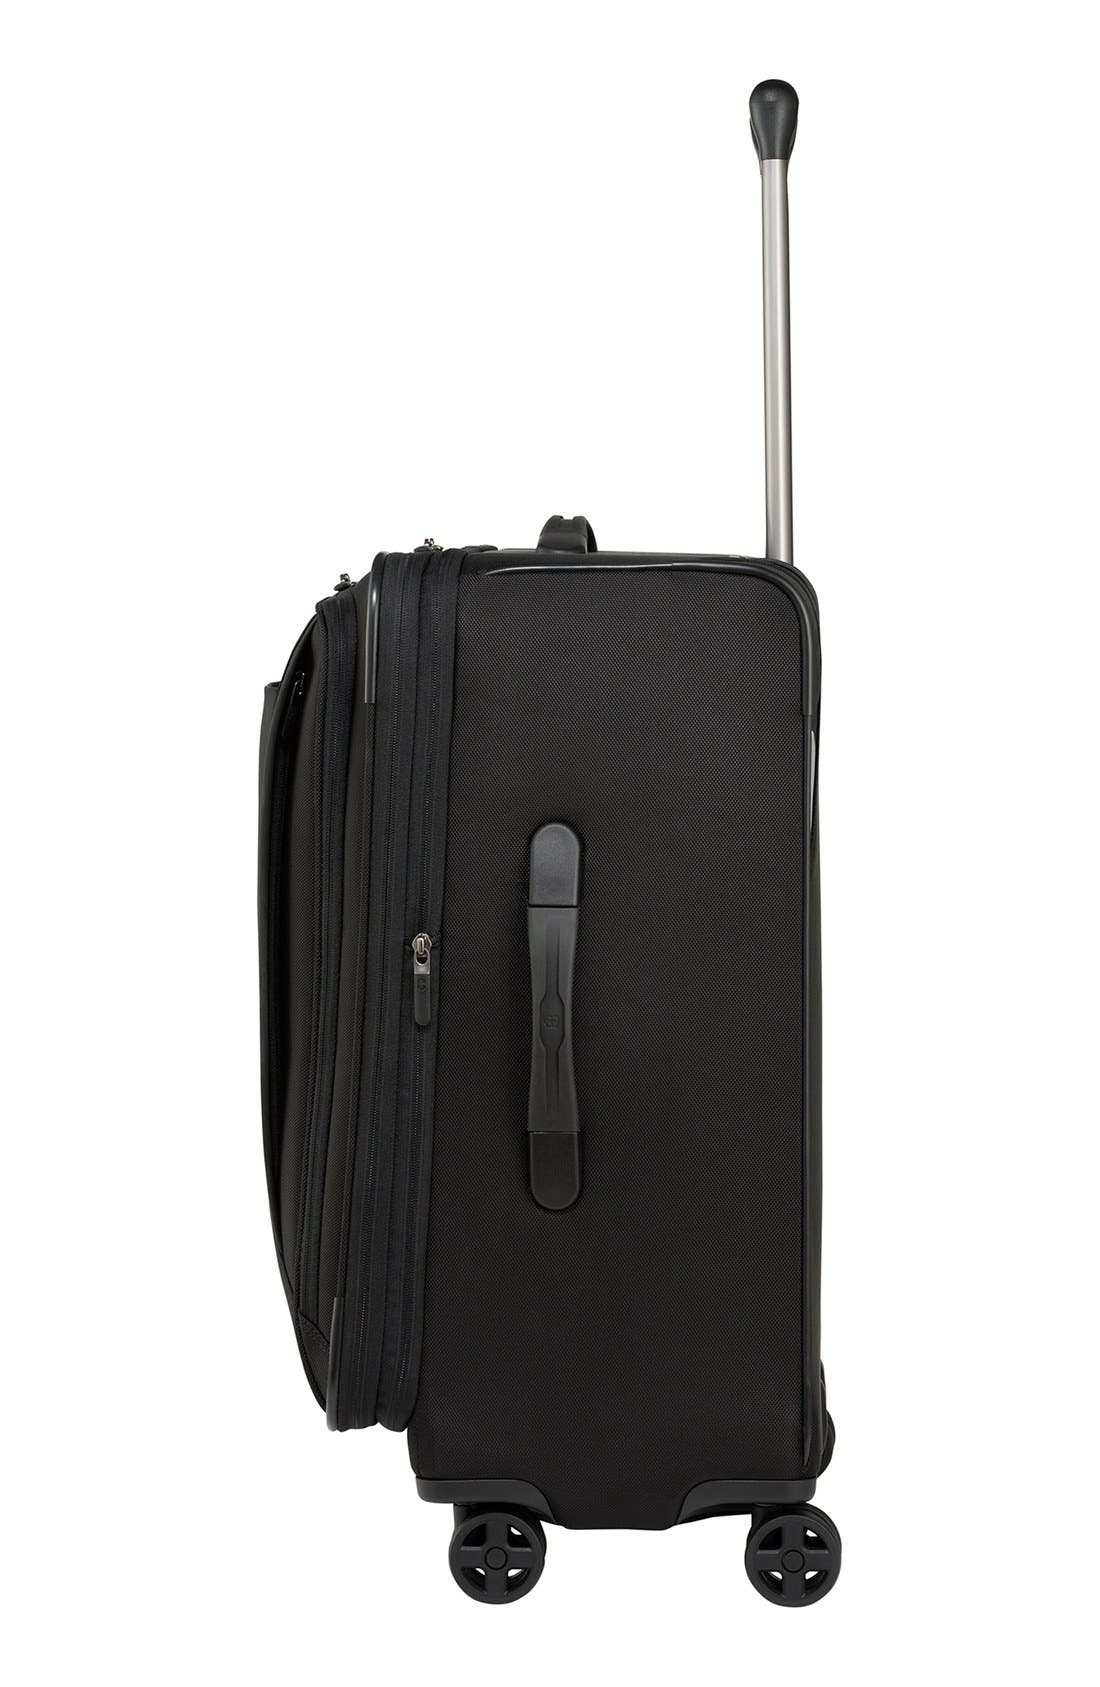 WT 5.0 Dual Caster Wheeled 24-Inch Packing Case,                             Alternate thumbnail 7, color,